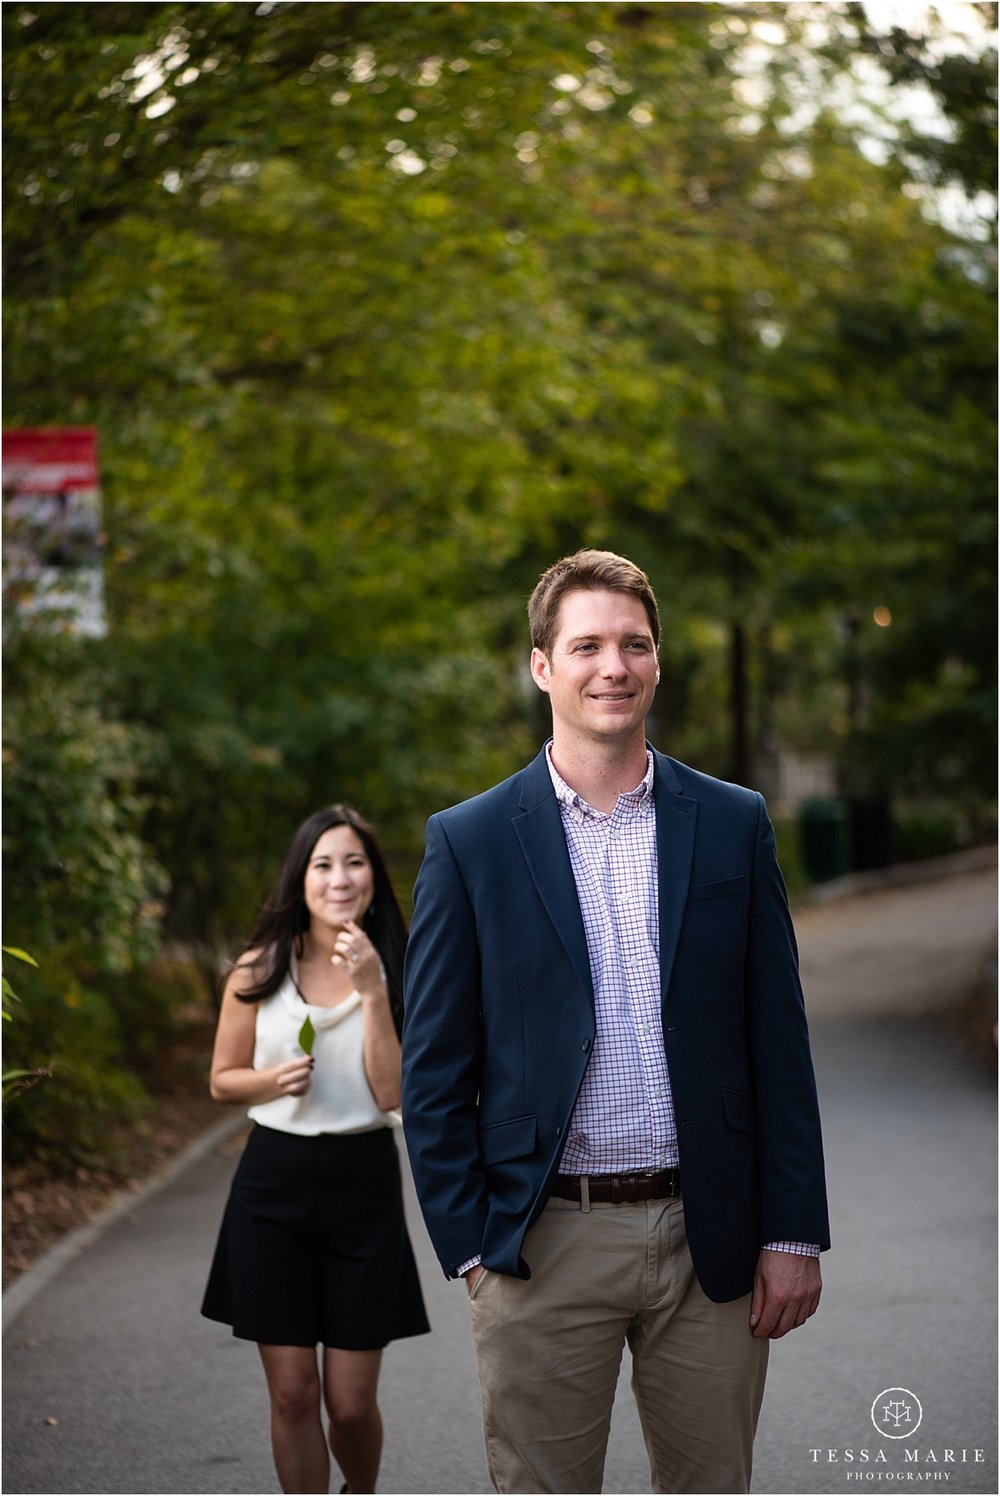 Tessa_marie_photography_wedding_photographer_engagement_pictures_piedmont_park_0064.jpg